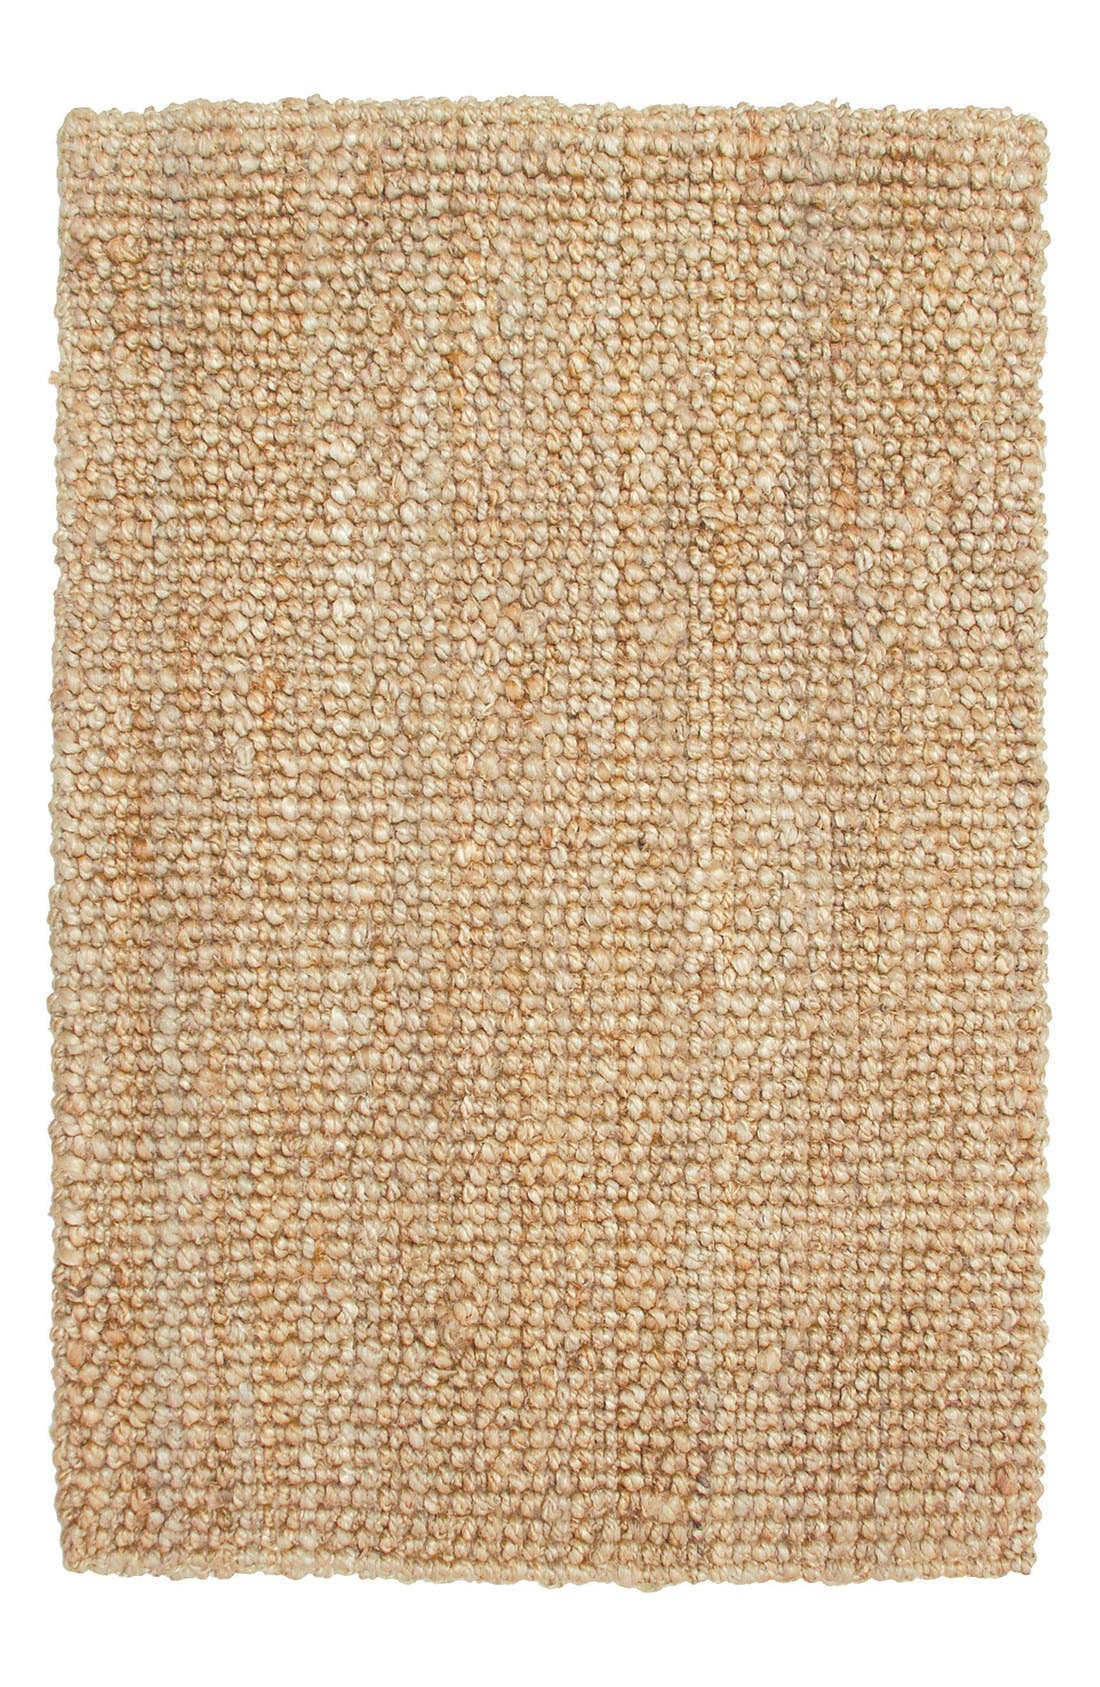 Hand Woven Loop Rug,                             Main thumbnail 1, color,                             Natural